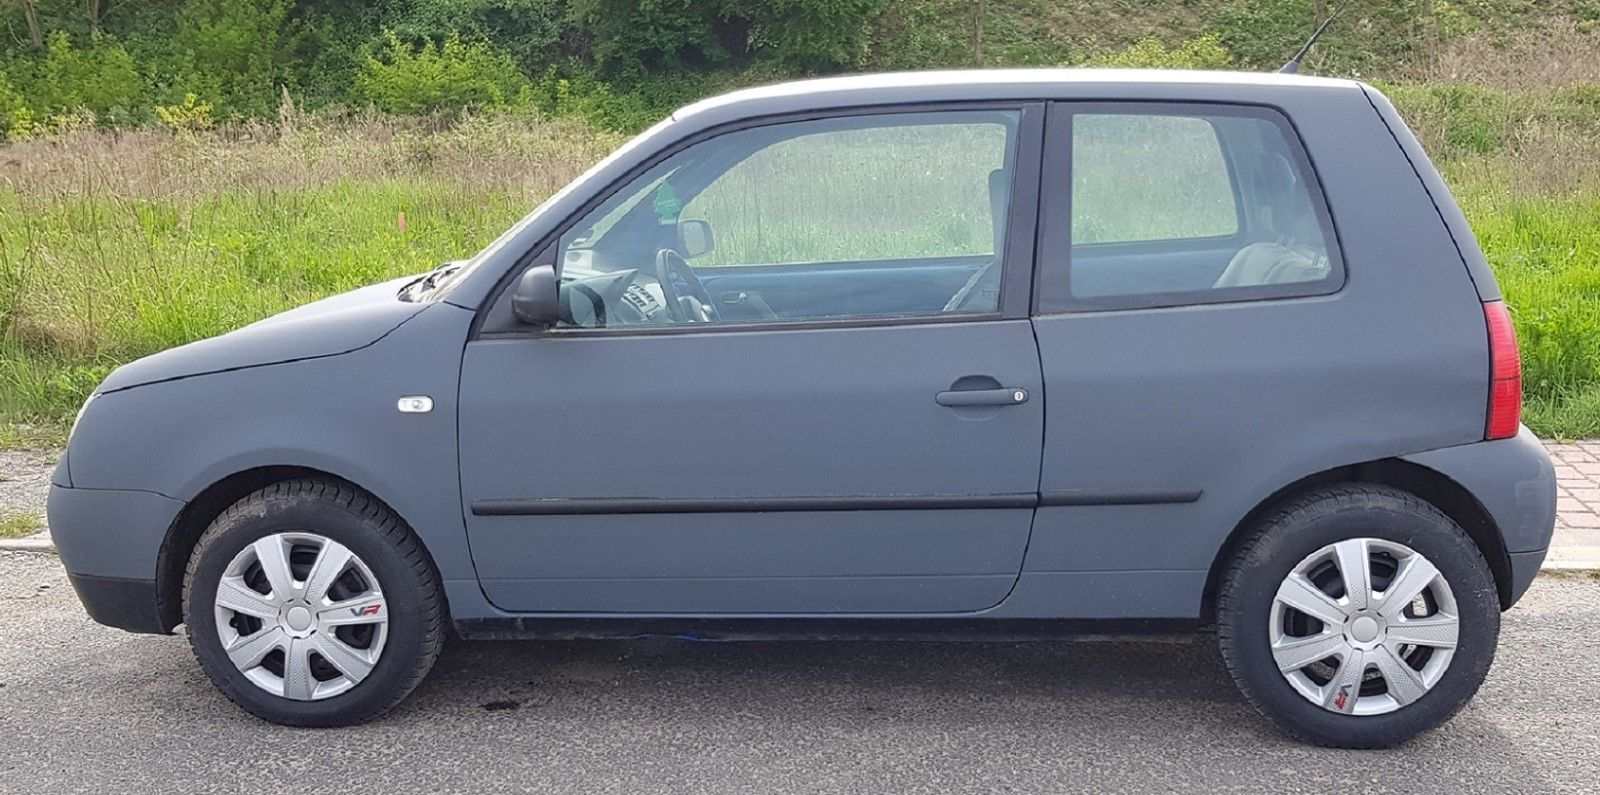 VW Lupo College ATM 120tkm